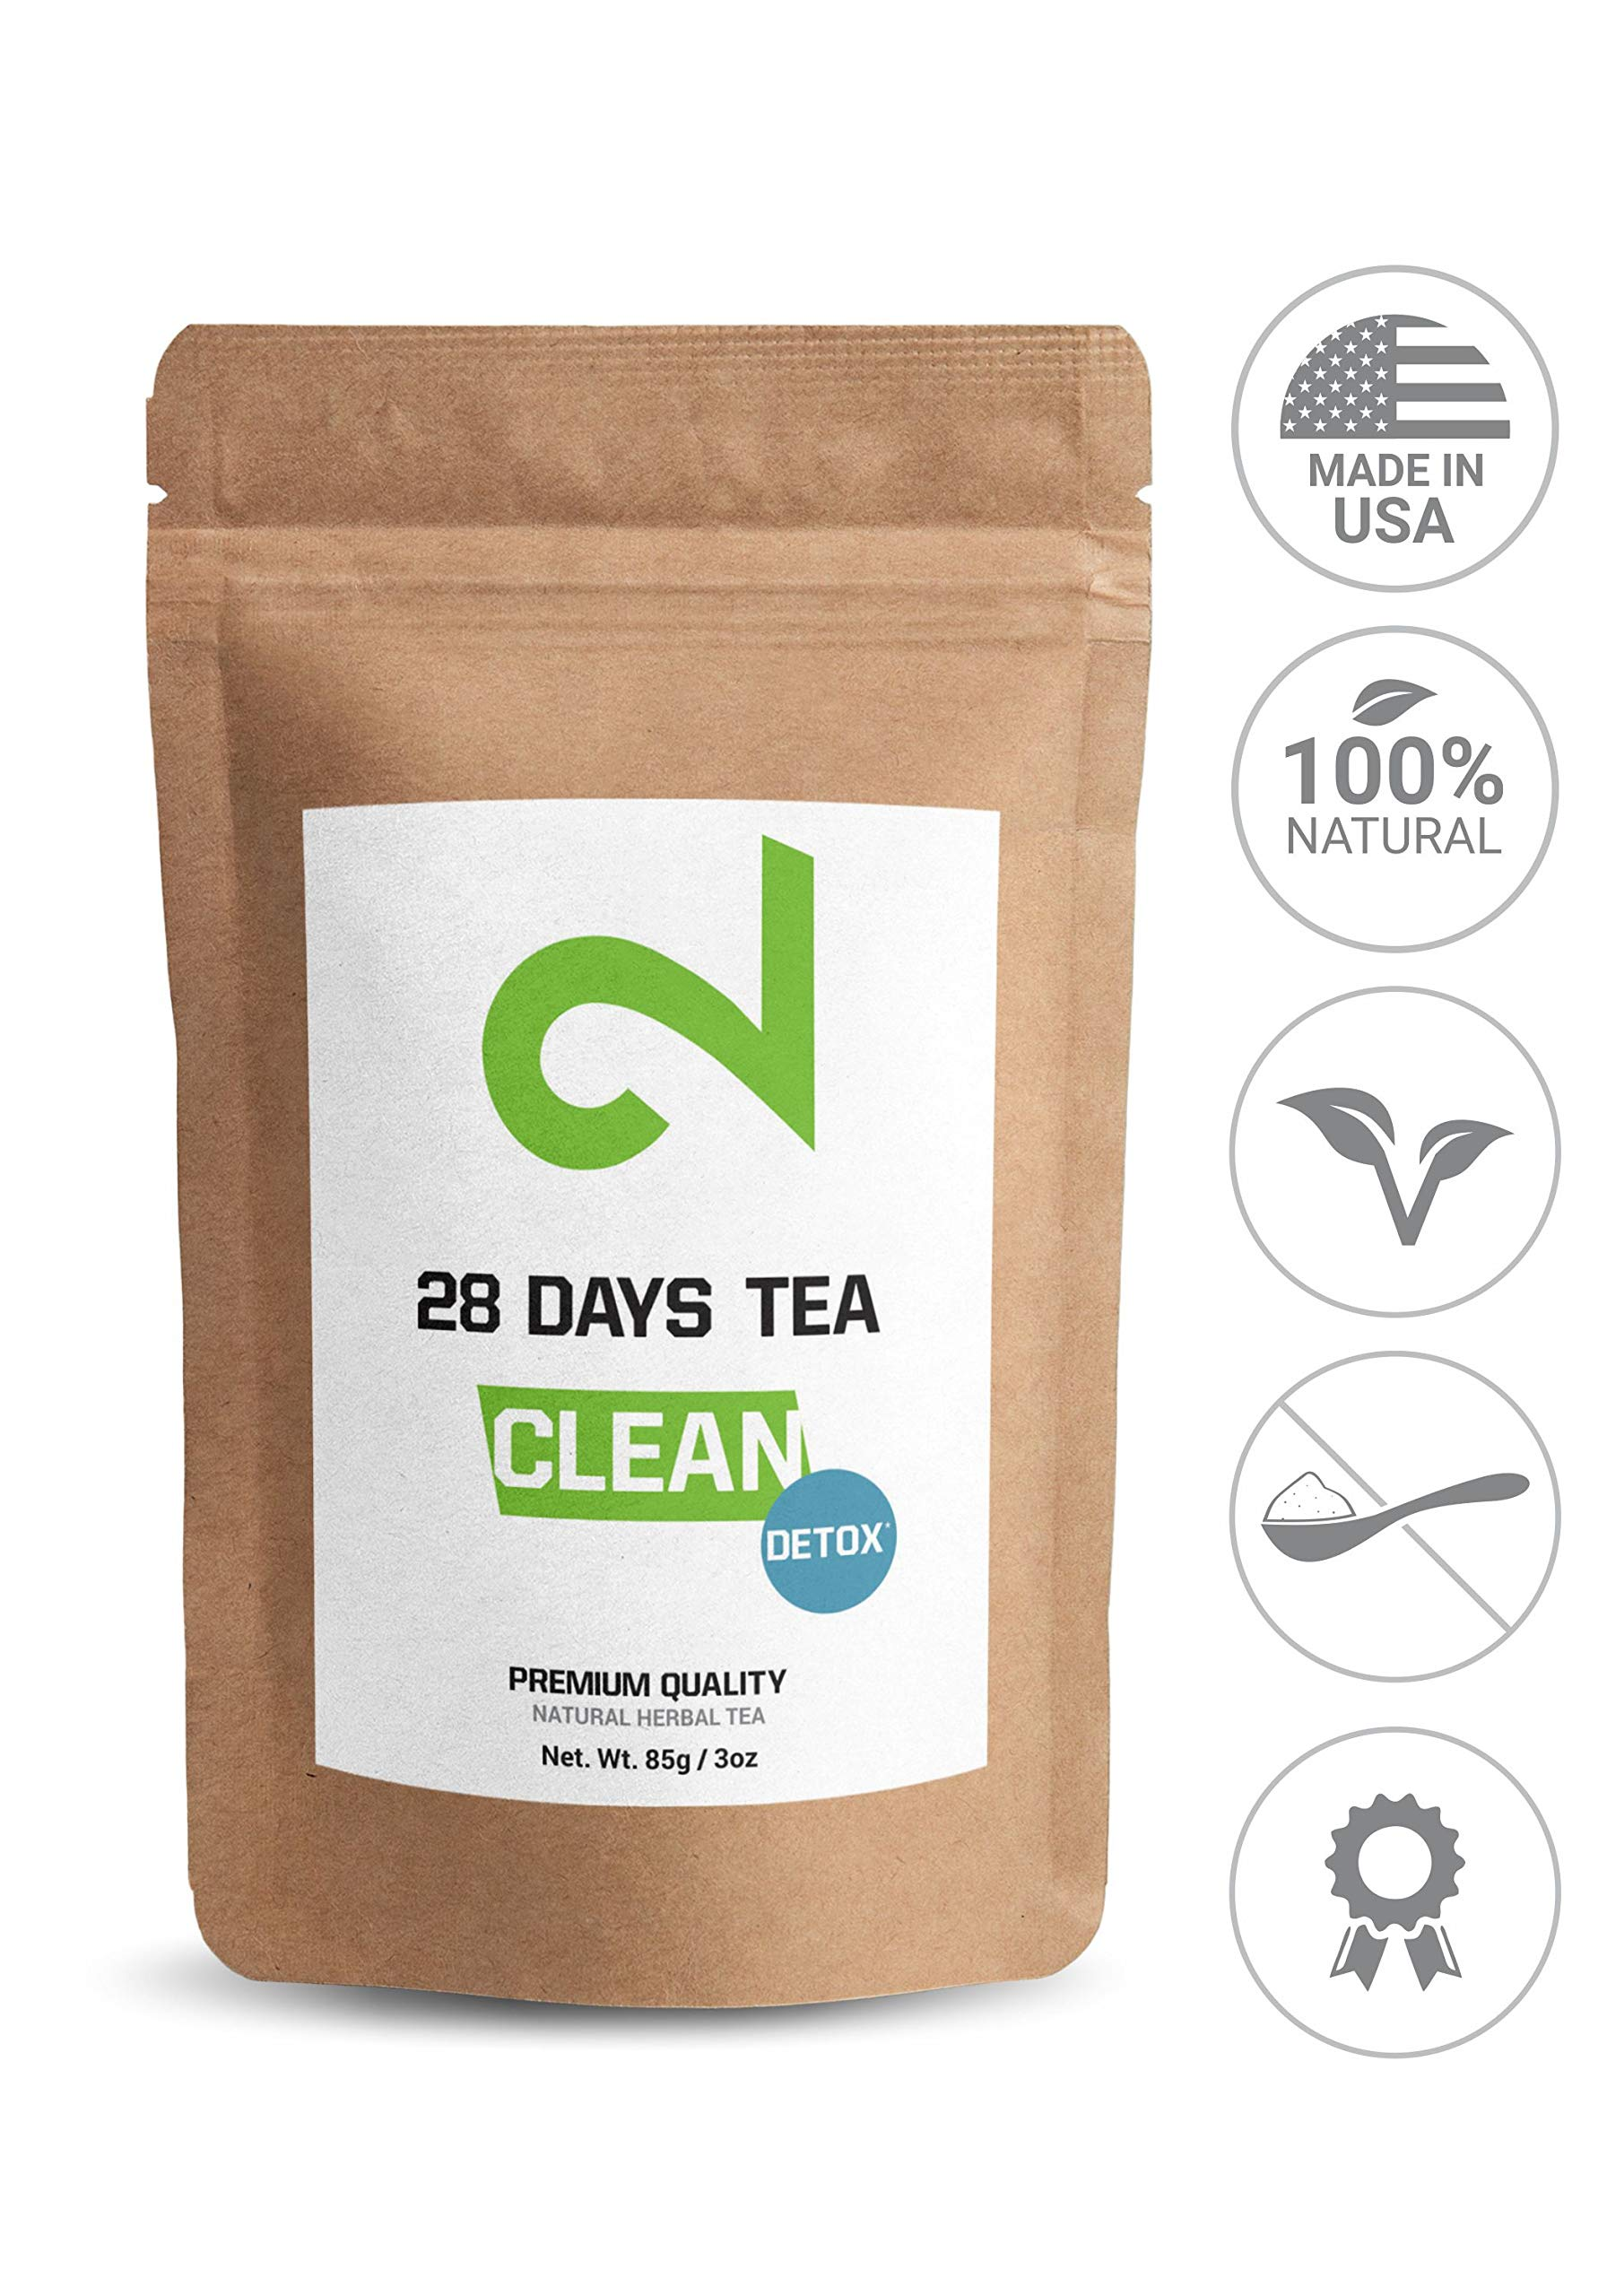 DUAL 28 Days Detox Tea for Weight Loss | Slimming and Cleanse Tea | Diet and Fat Loss Tea | Natural Dietary Supplement | Loose Leaf Tea | Made in USA | 85g (Original Version)